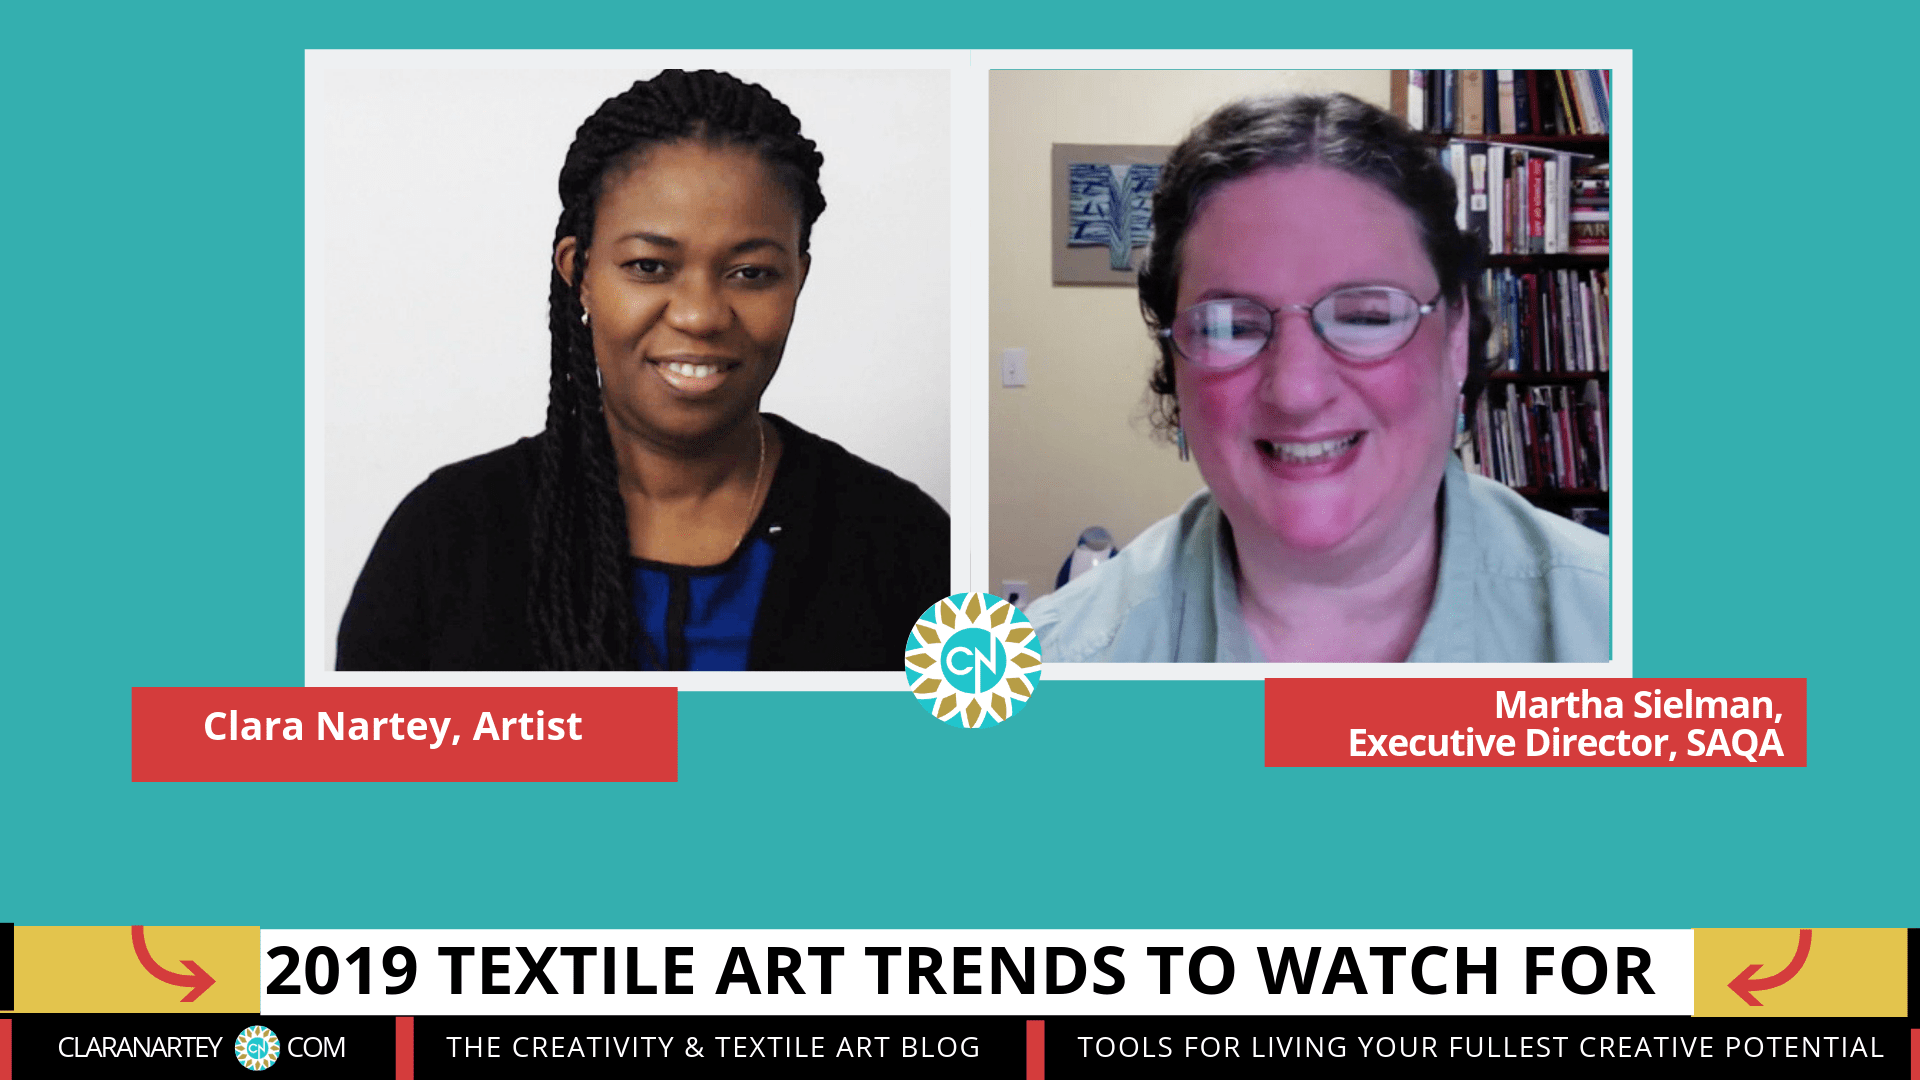 Textile Art Trends Report